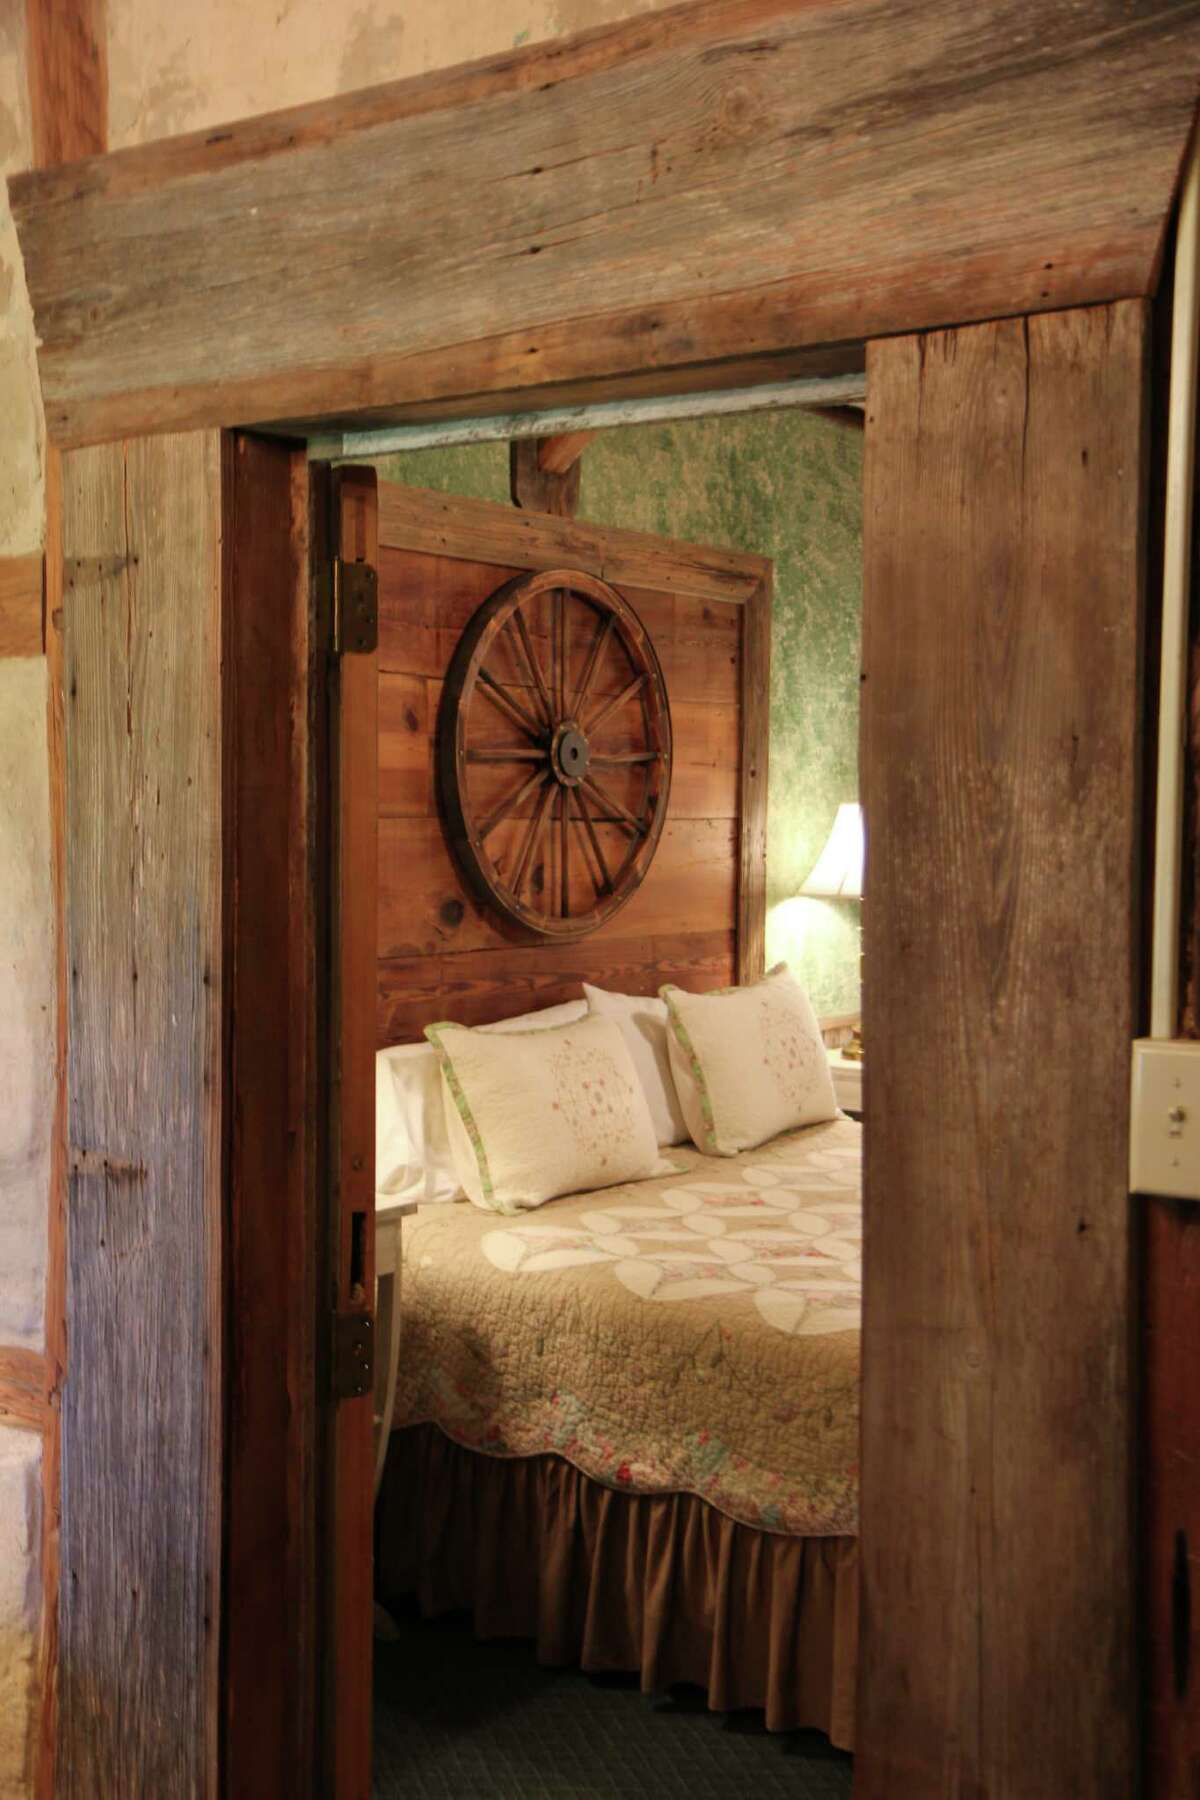 Inn owners restored the Farm House, which was originally built by a German settler in the 1850s.